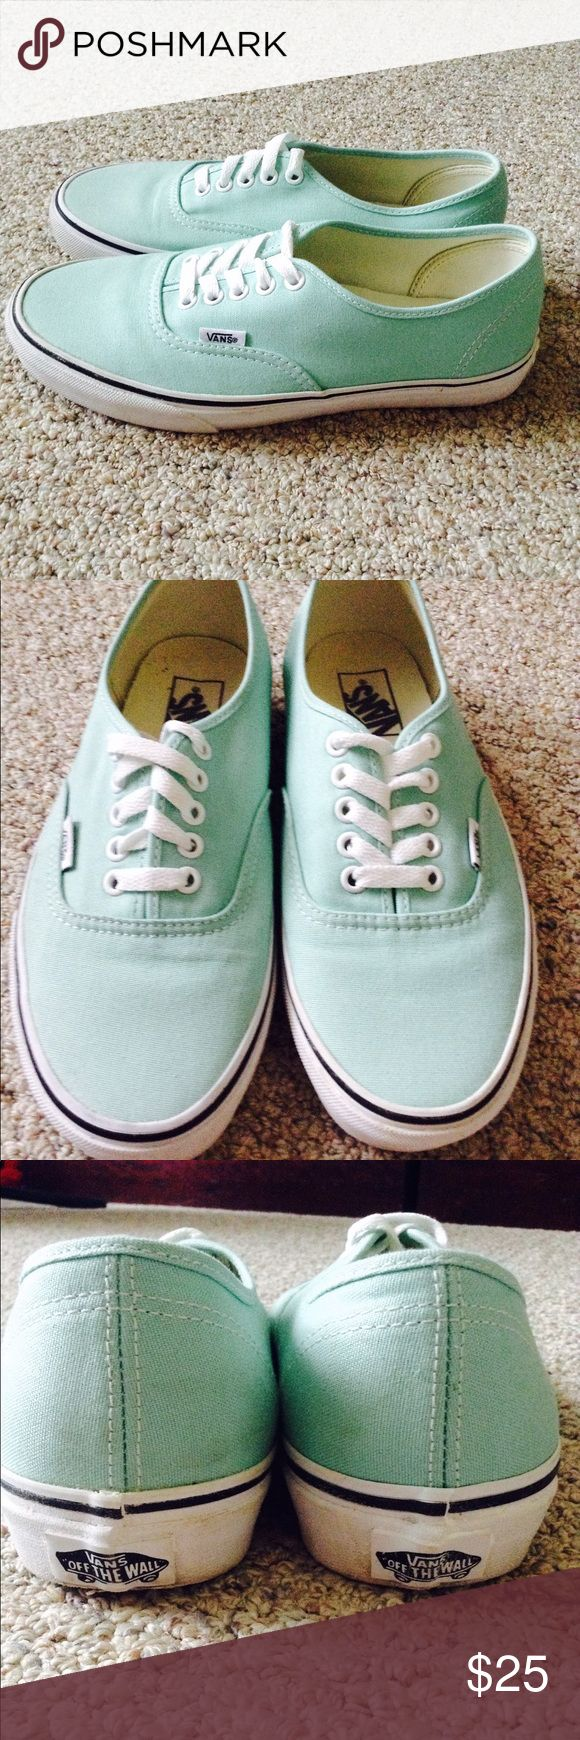 Mint Green Vans NWOT Super cute mint green vans only worn for less that an hour out of the store, in nearly perfect condition Vans Shoes Athletic Shoes